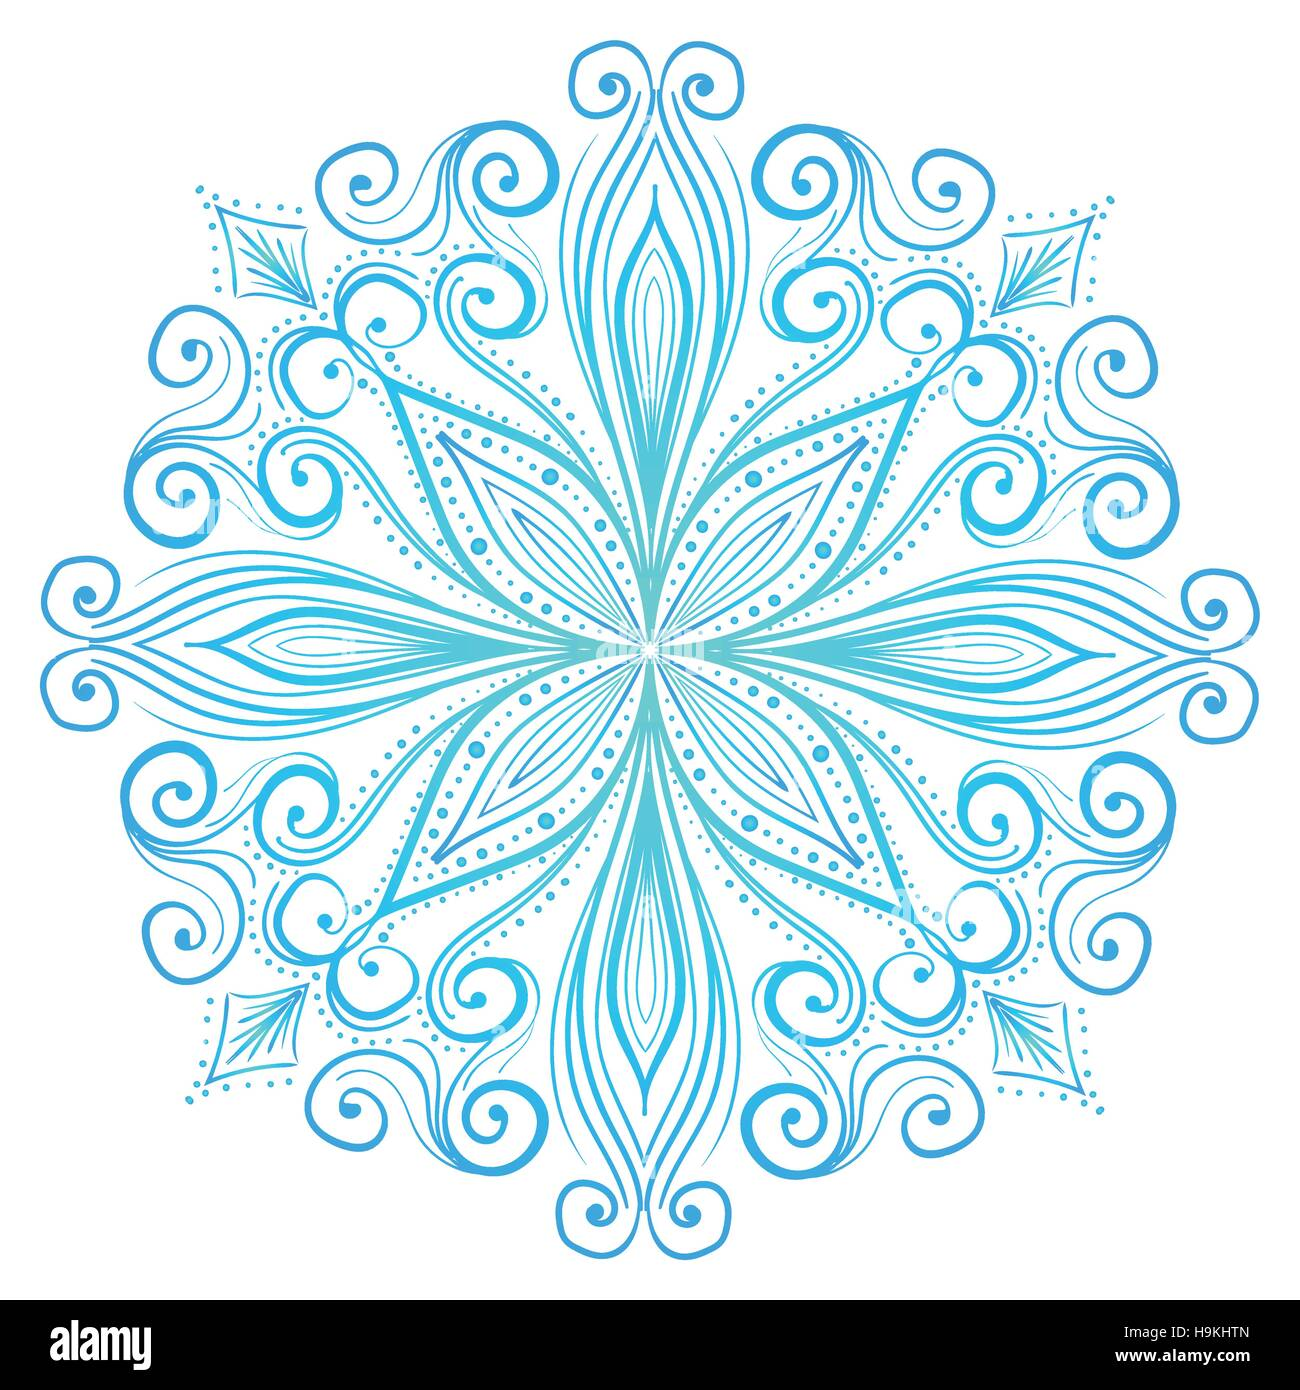 Mandala, Tribal Ethnic Ornament, Islamic Arabic Indian Pattern. Vector Illustration. Can Used for Design Element, - Stock Image